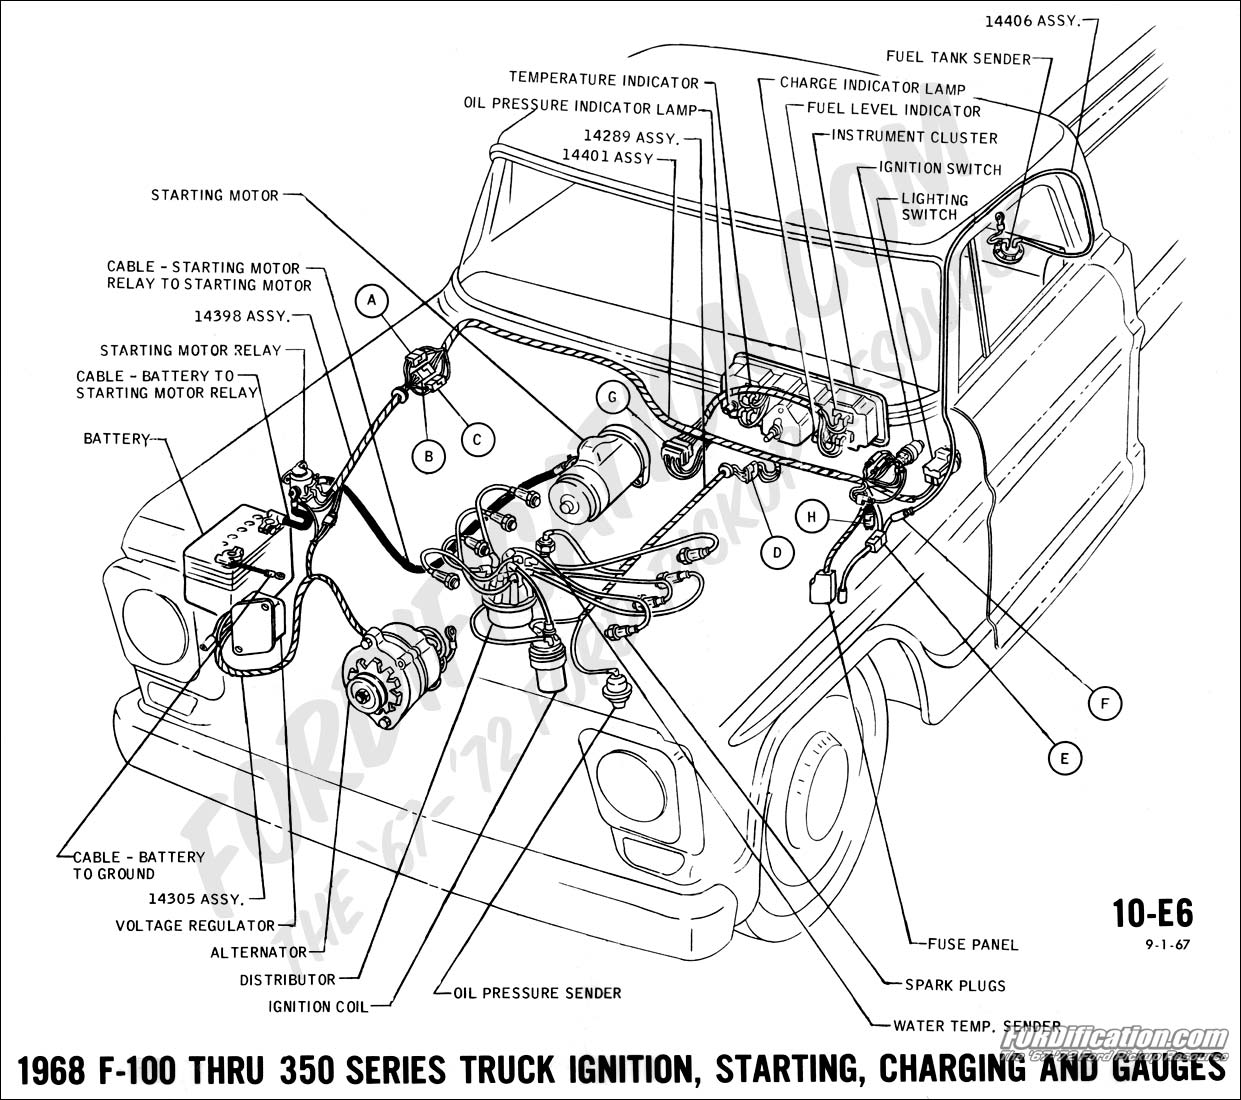 Efi Wiring Diagram 86 Ford 4x4 Library 1968 F 100 Thru 350 Ignition Starting Charging And Gauges Truck Technical Drawings Schematics